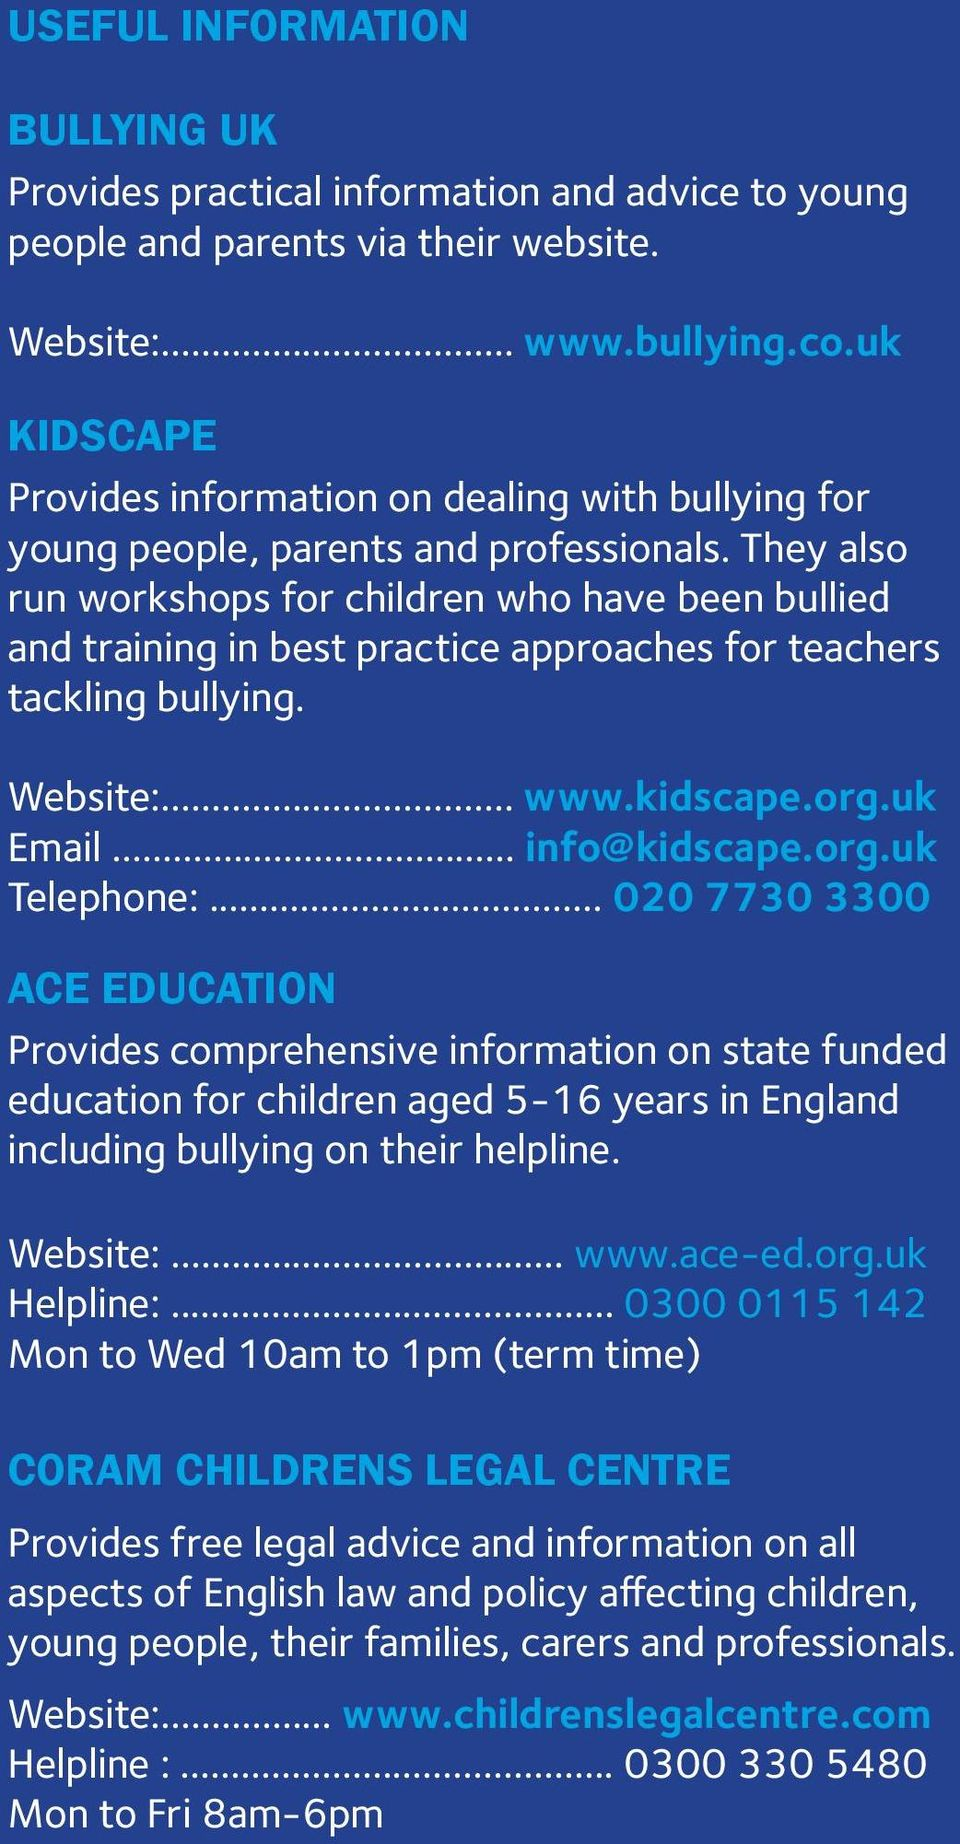 They also run workshops for children who have been bullied and training in best practice approaches for teachers tackling bullying. Website:... www.kidscape.org.uk Email... info@kidscape.org.uk Telephone:.